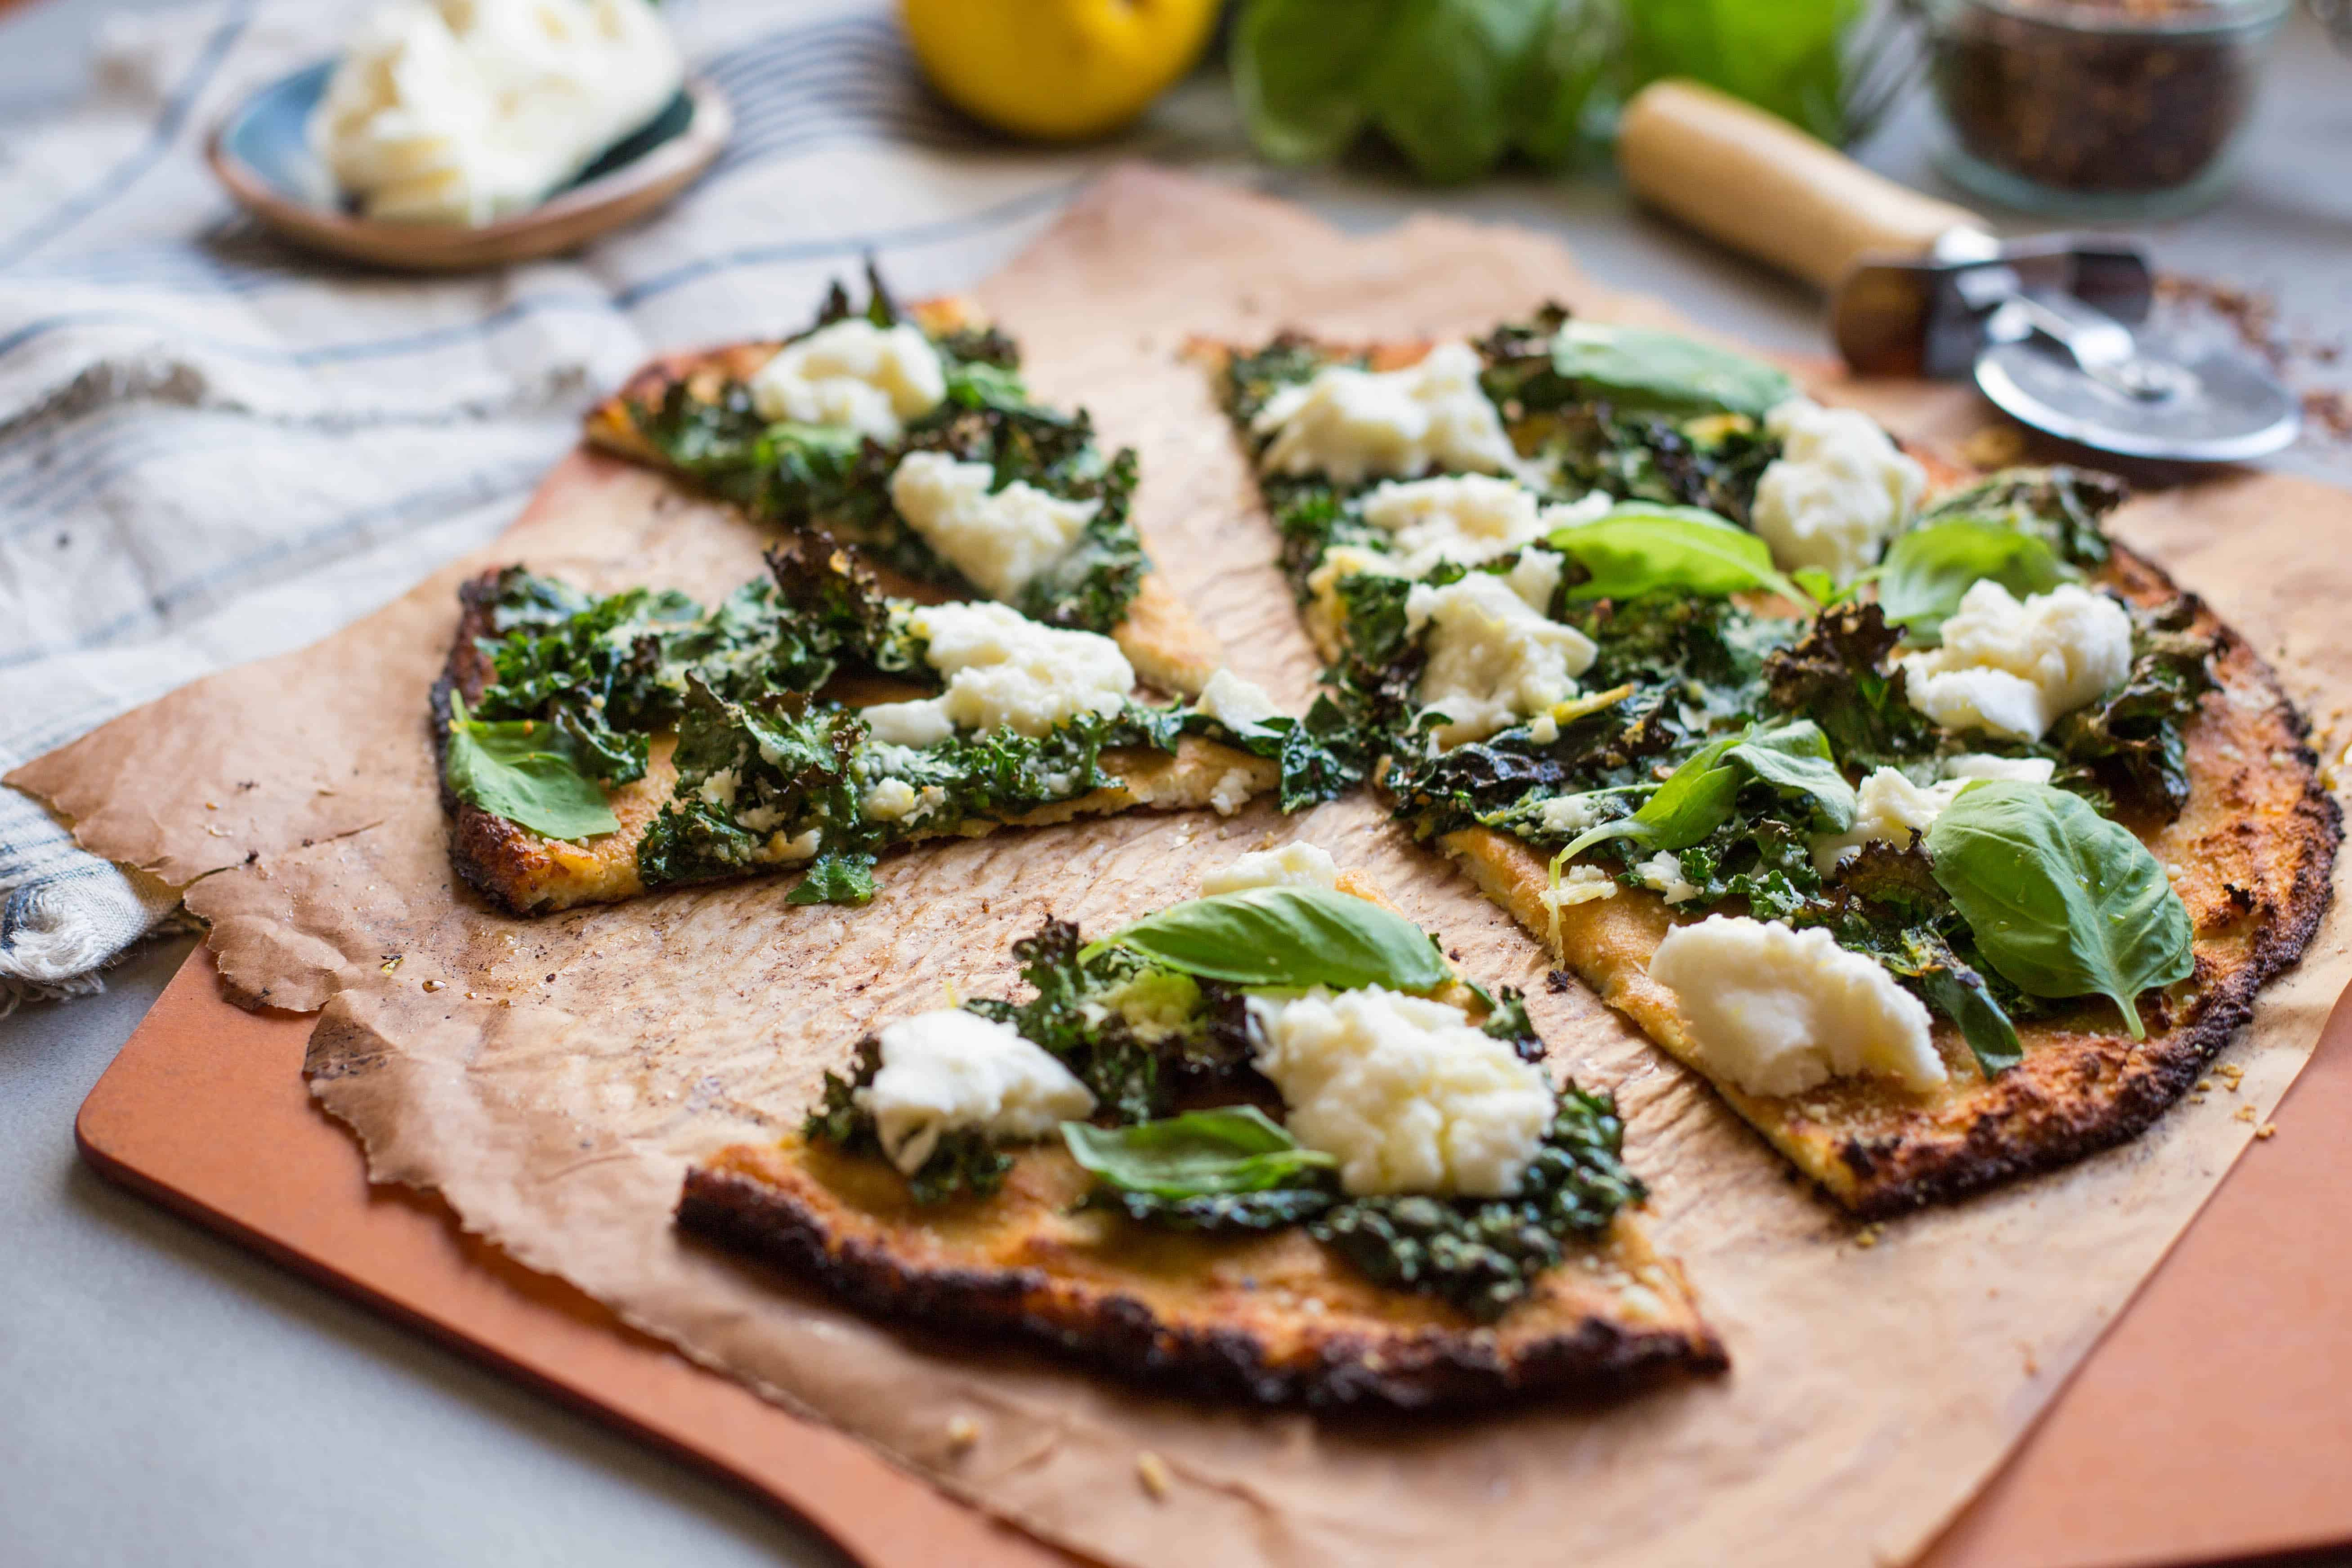 Cauliflower crust pizza topped with kale and mozzarella on a wood cutting board.